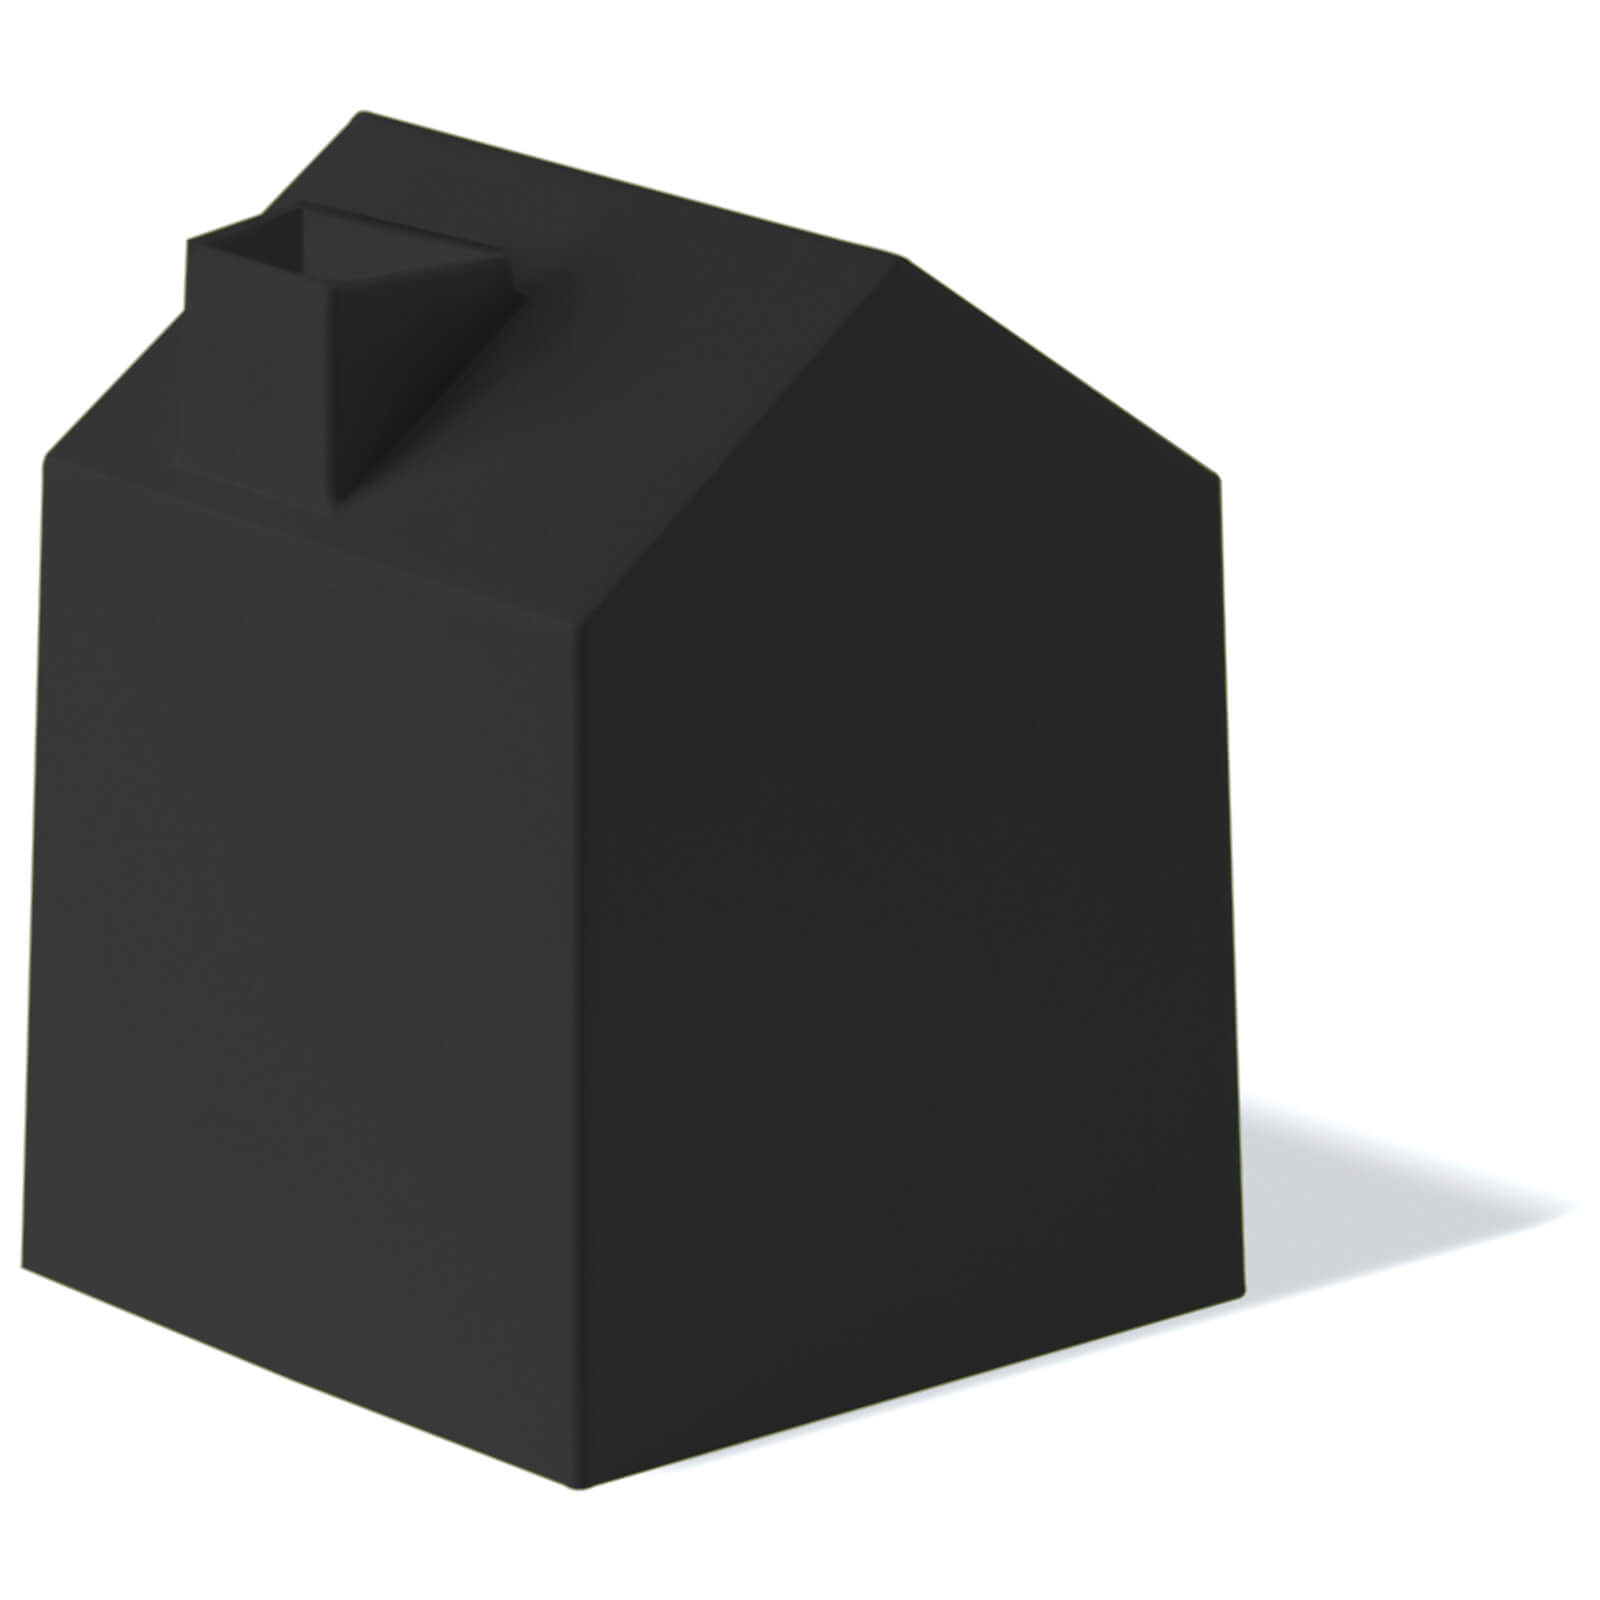 Umbra Casa Tissue Box Cover - Black